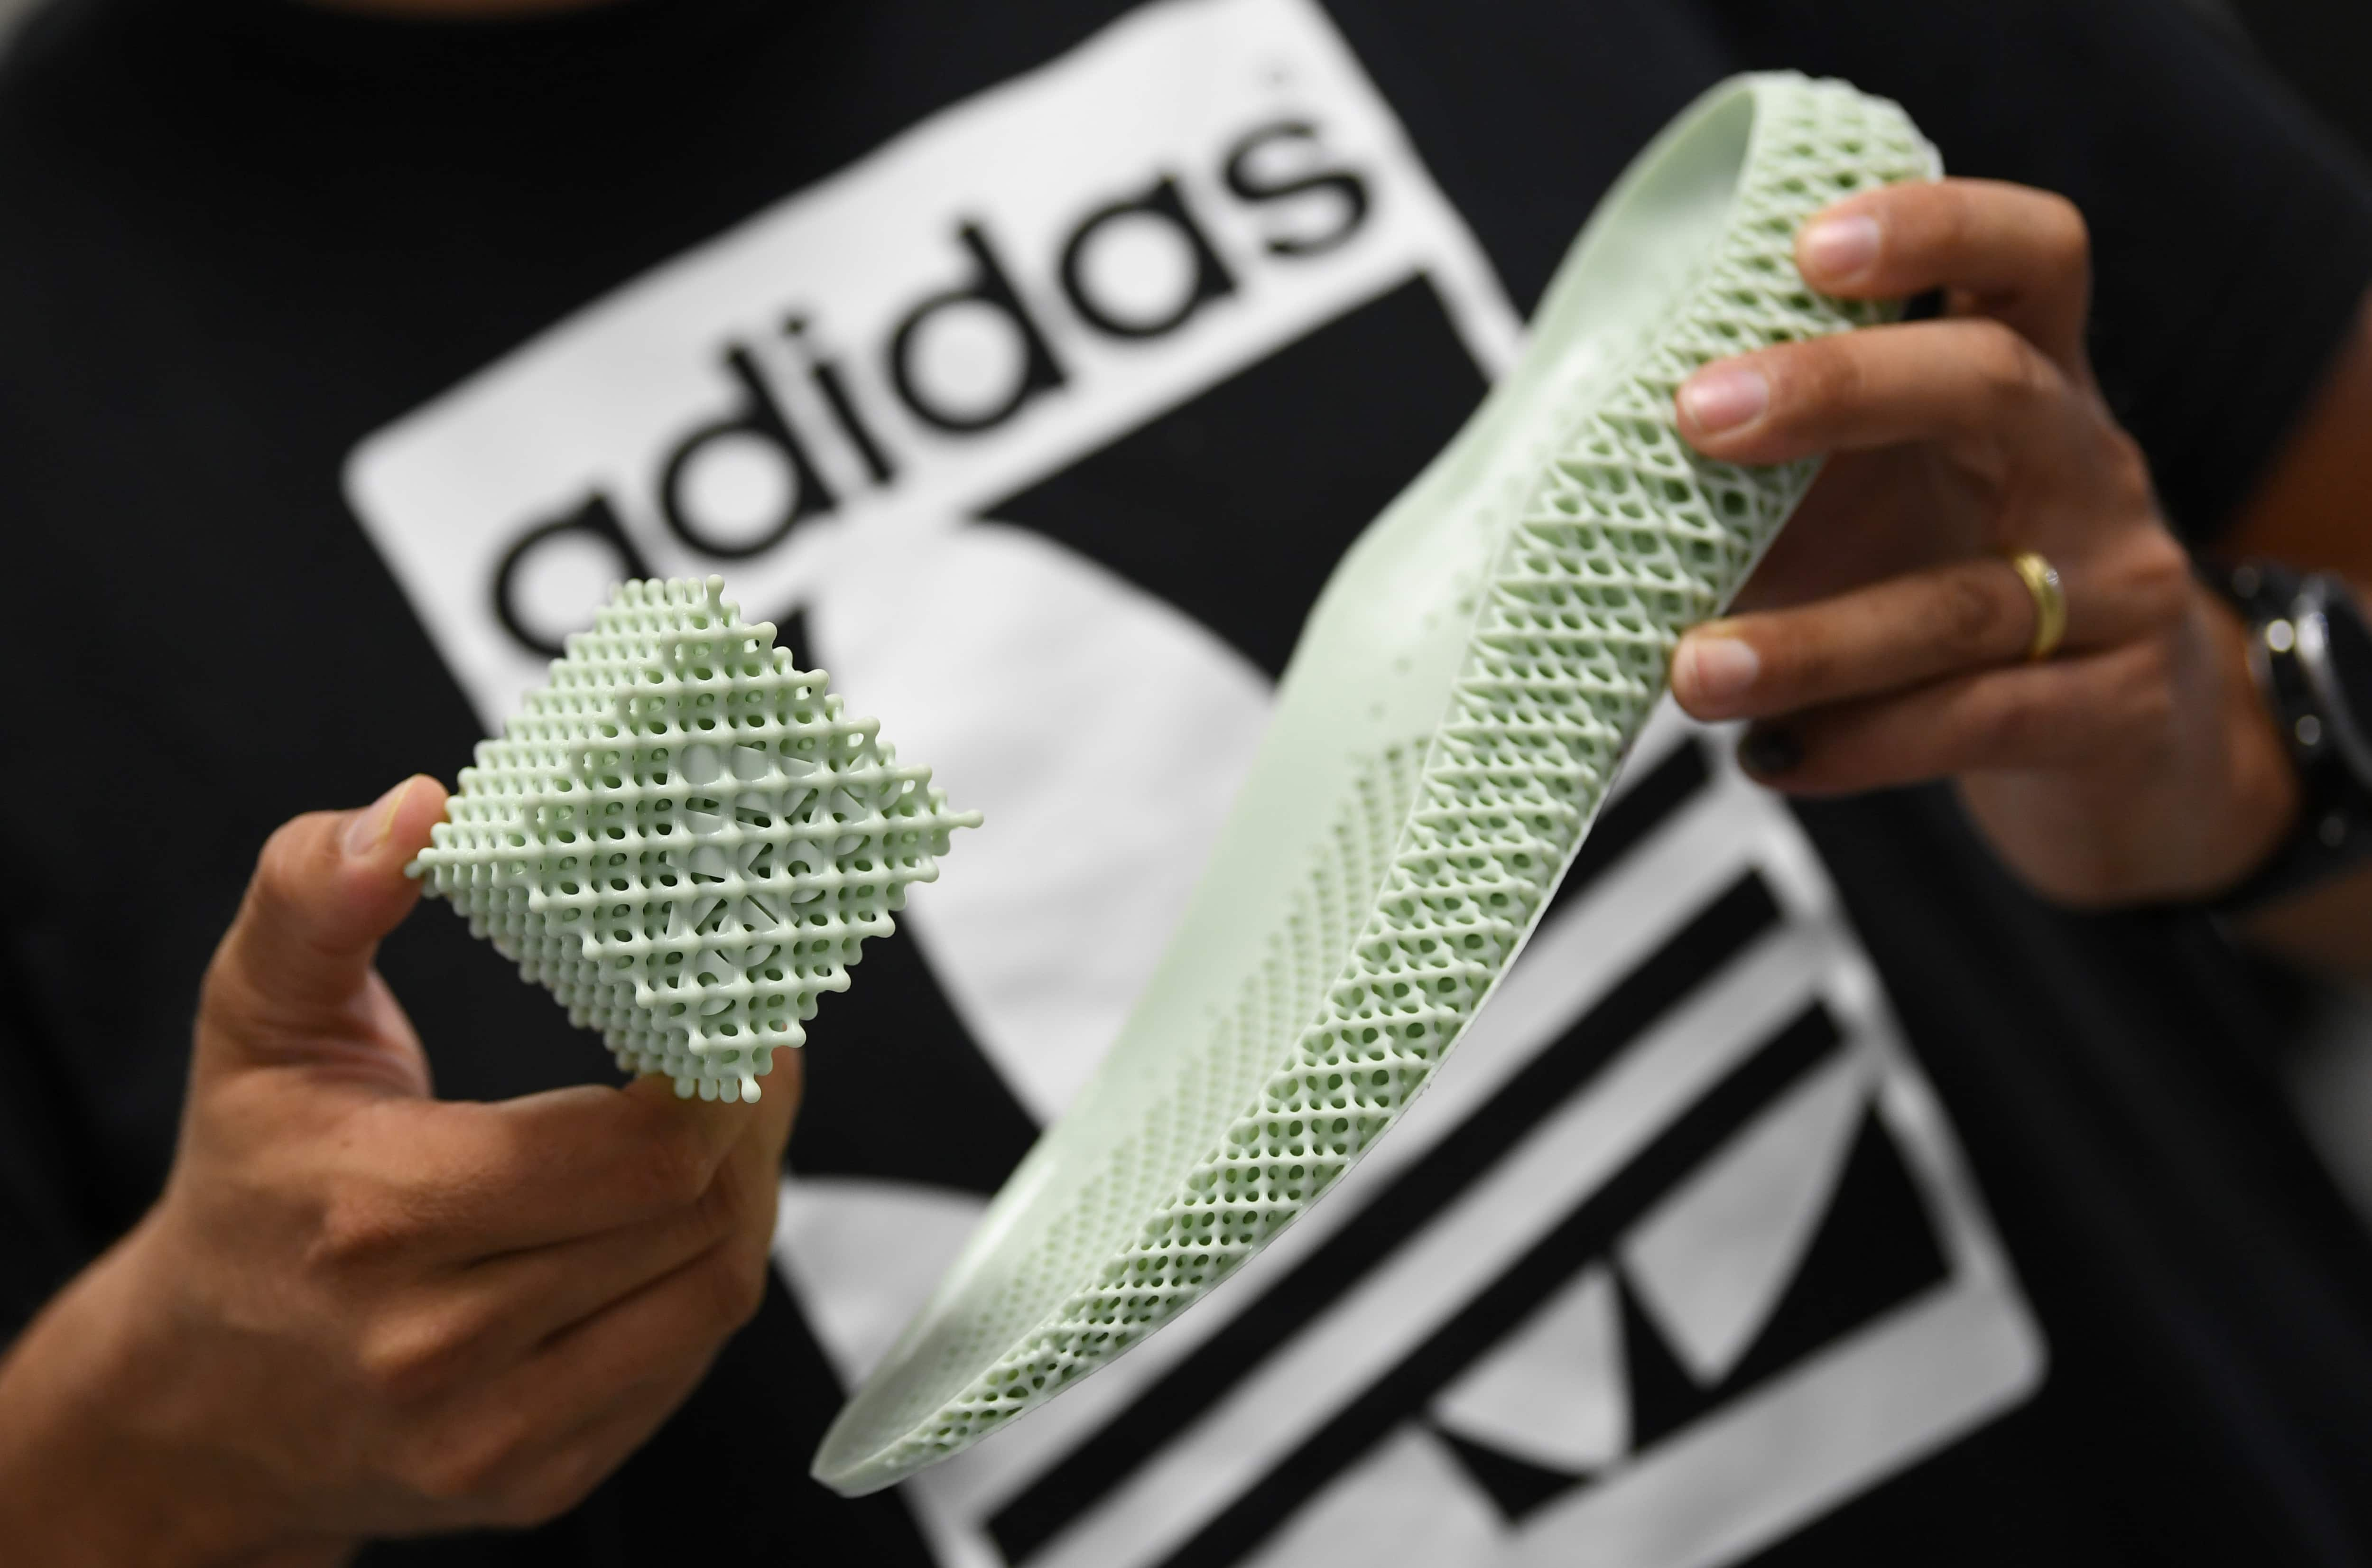 The sole of the Adidas shoe Alphaedge is presented during celebrations for German sports apparel maker Adidas' 70th anniversary at the company's FutureLab in Herzogenaurach, Germany. (Reuters)